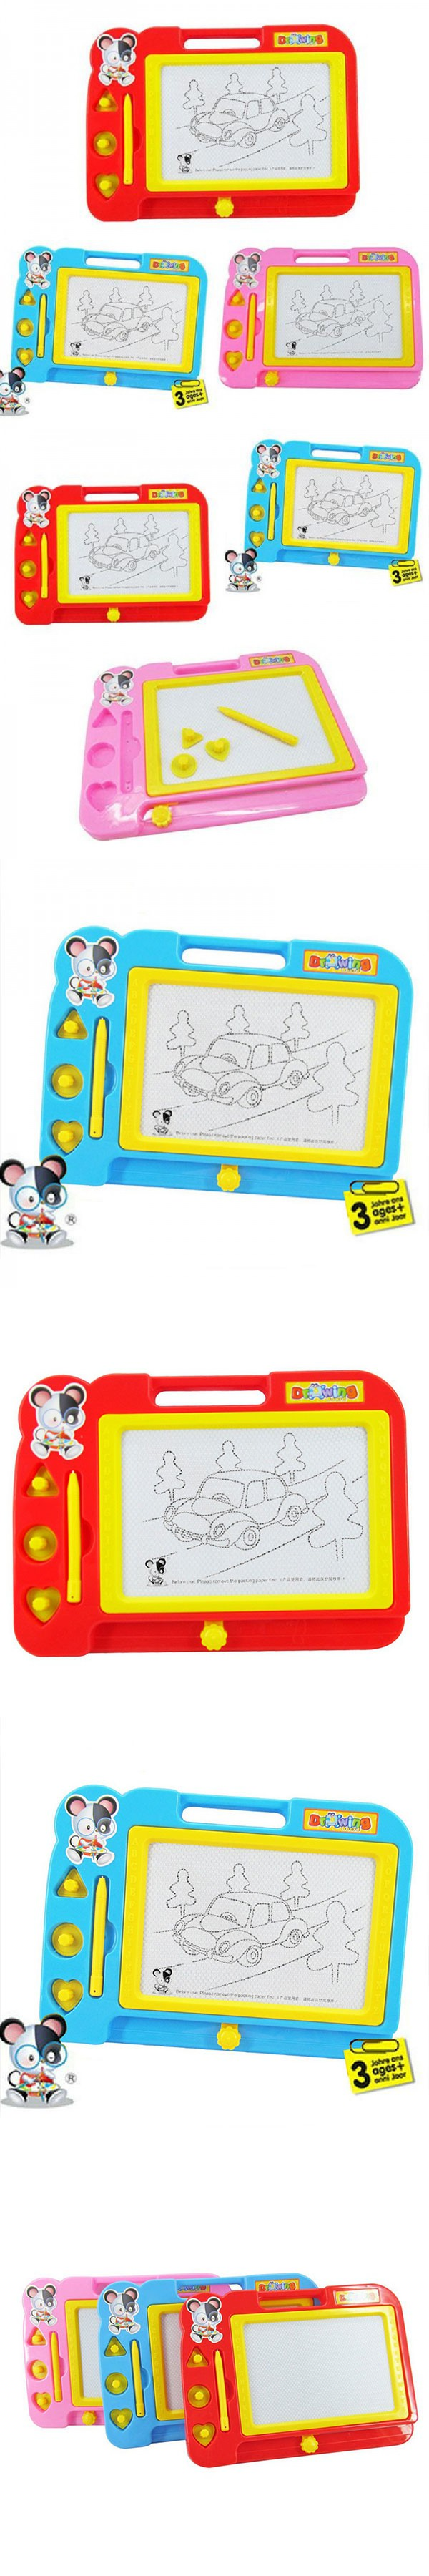 Magnetic craft board - Plastic Magnetic Drawing Board Sketcher Doodle Painting Fun Toy Craft Art For Kids Children Random Color